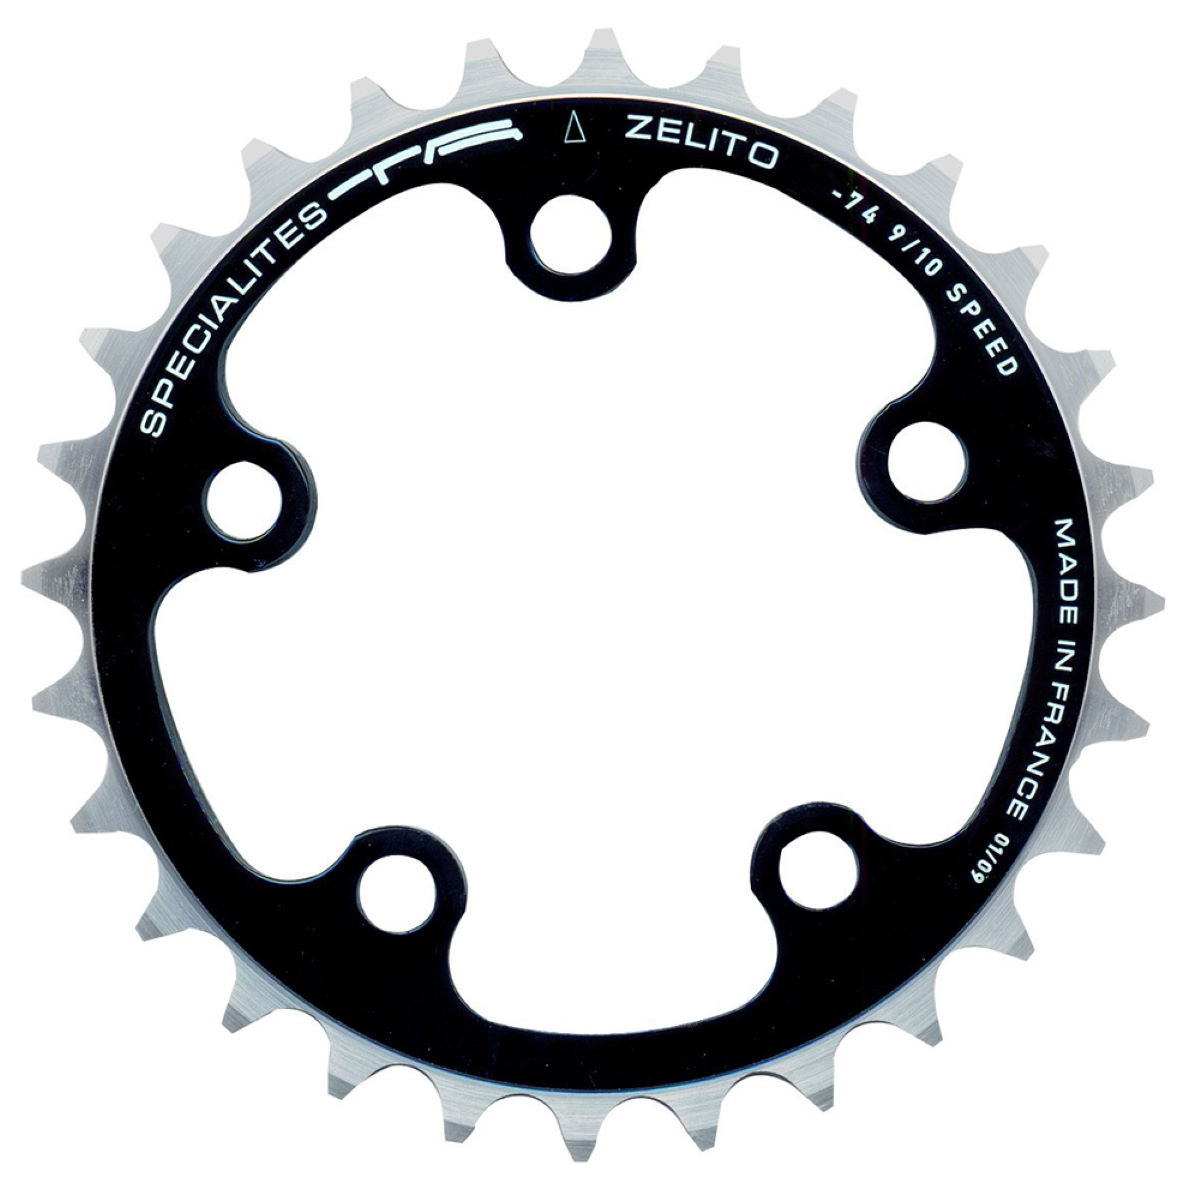 TA TA 74 PCD Zelito Triple Inner Road Chainring 24-30T   Chain Rings